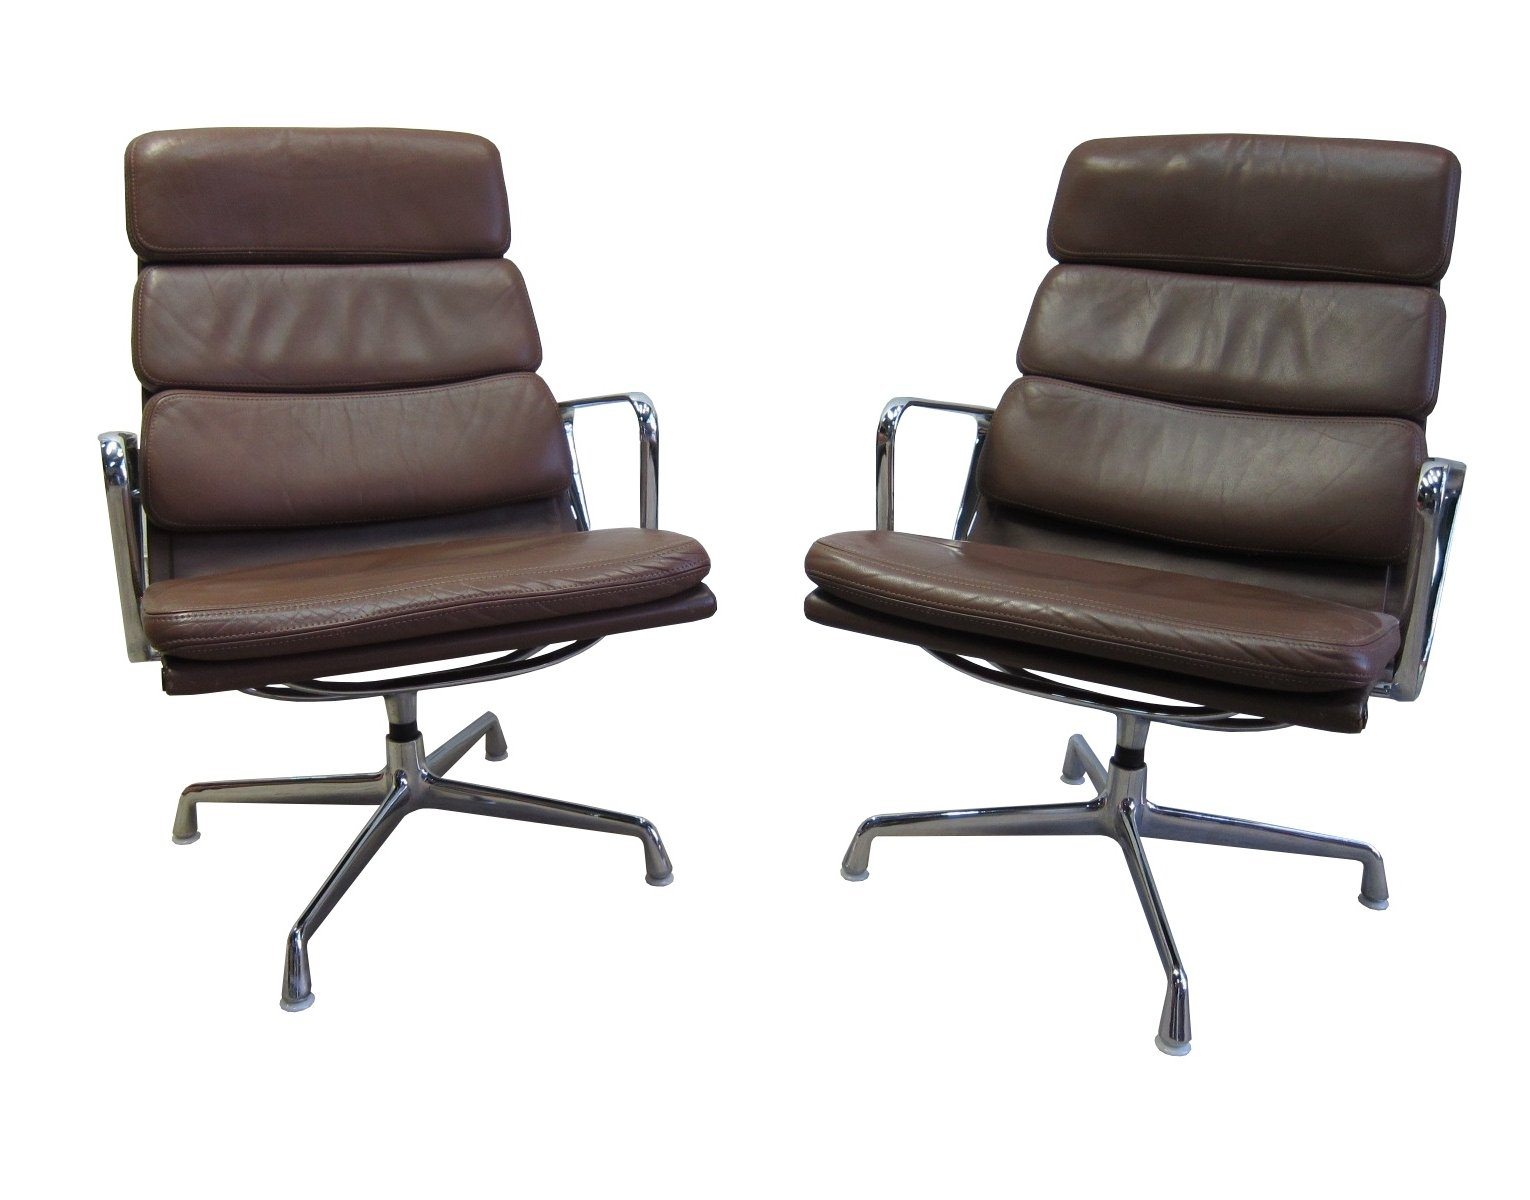 Ea216 softpad lounge chairs by eames for herman miller by vitra 69516 - Herman miller chair eames ...